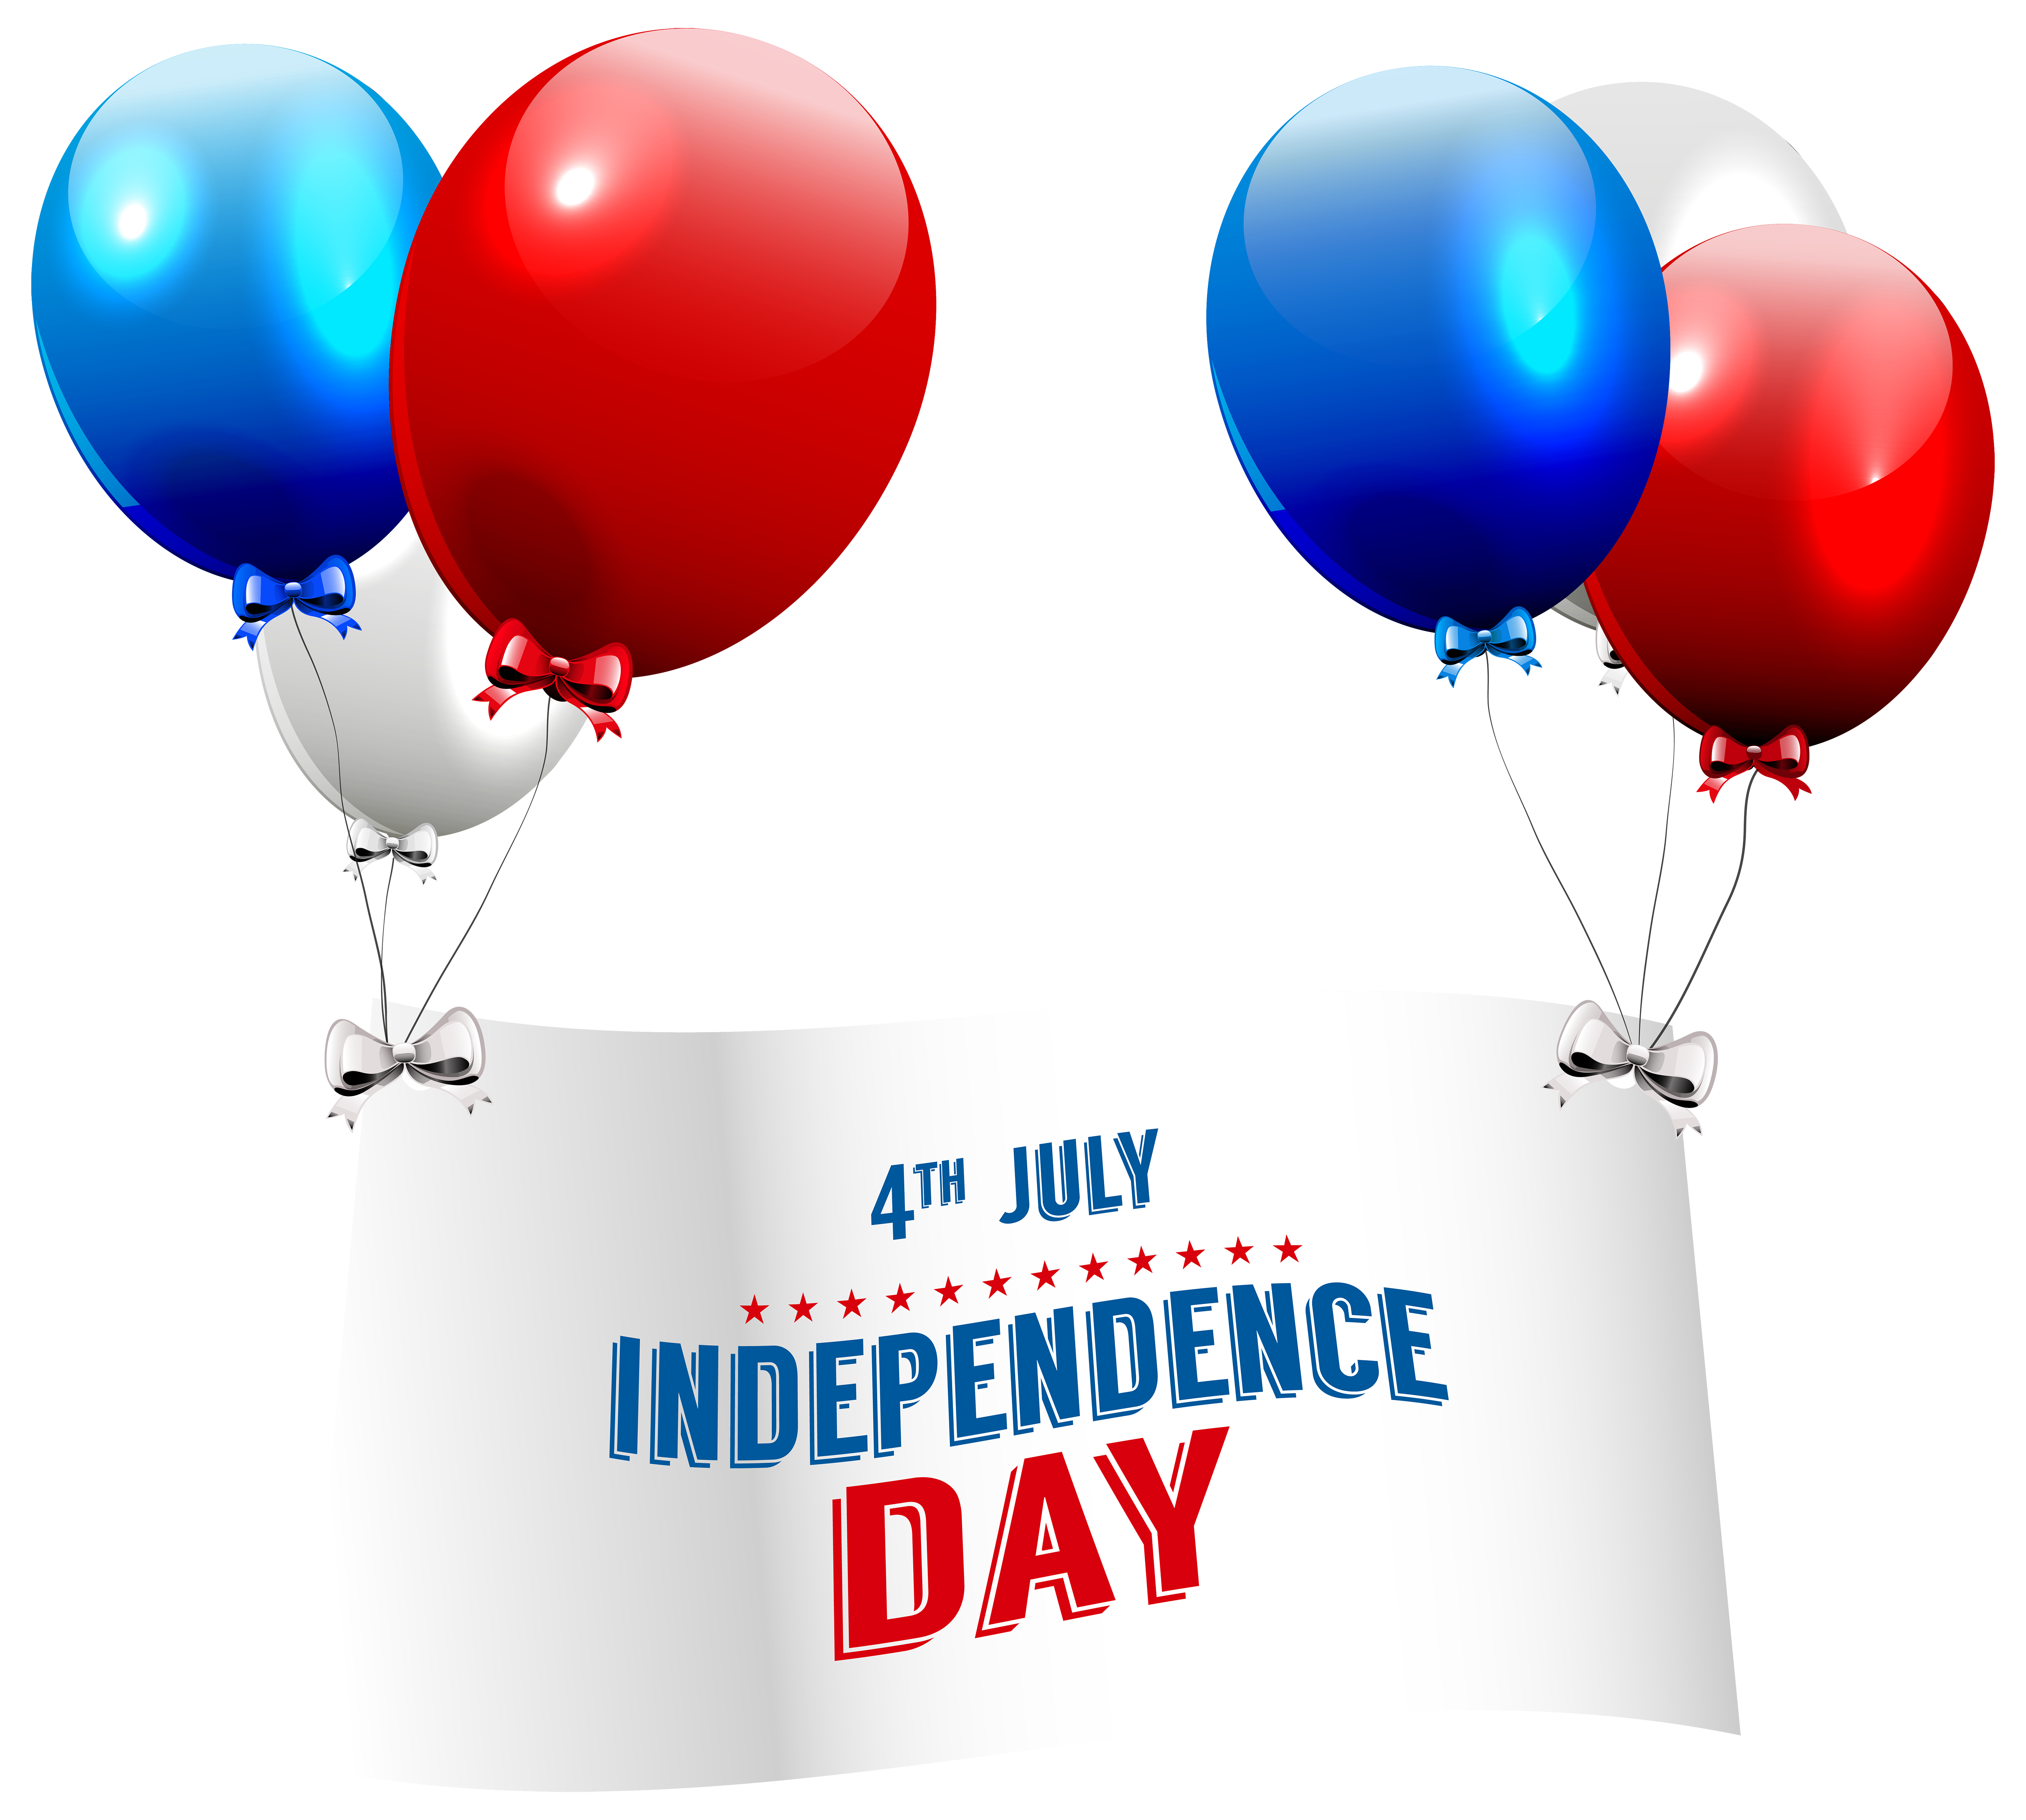 Clipart balloon gate. Independence day with balloons